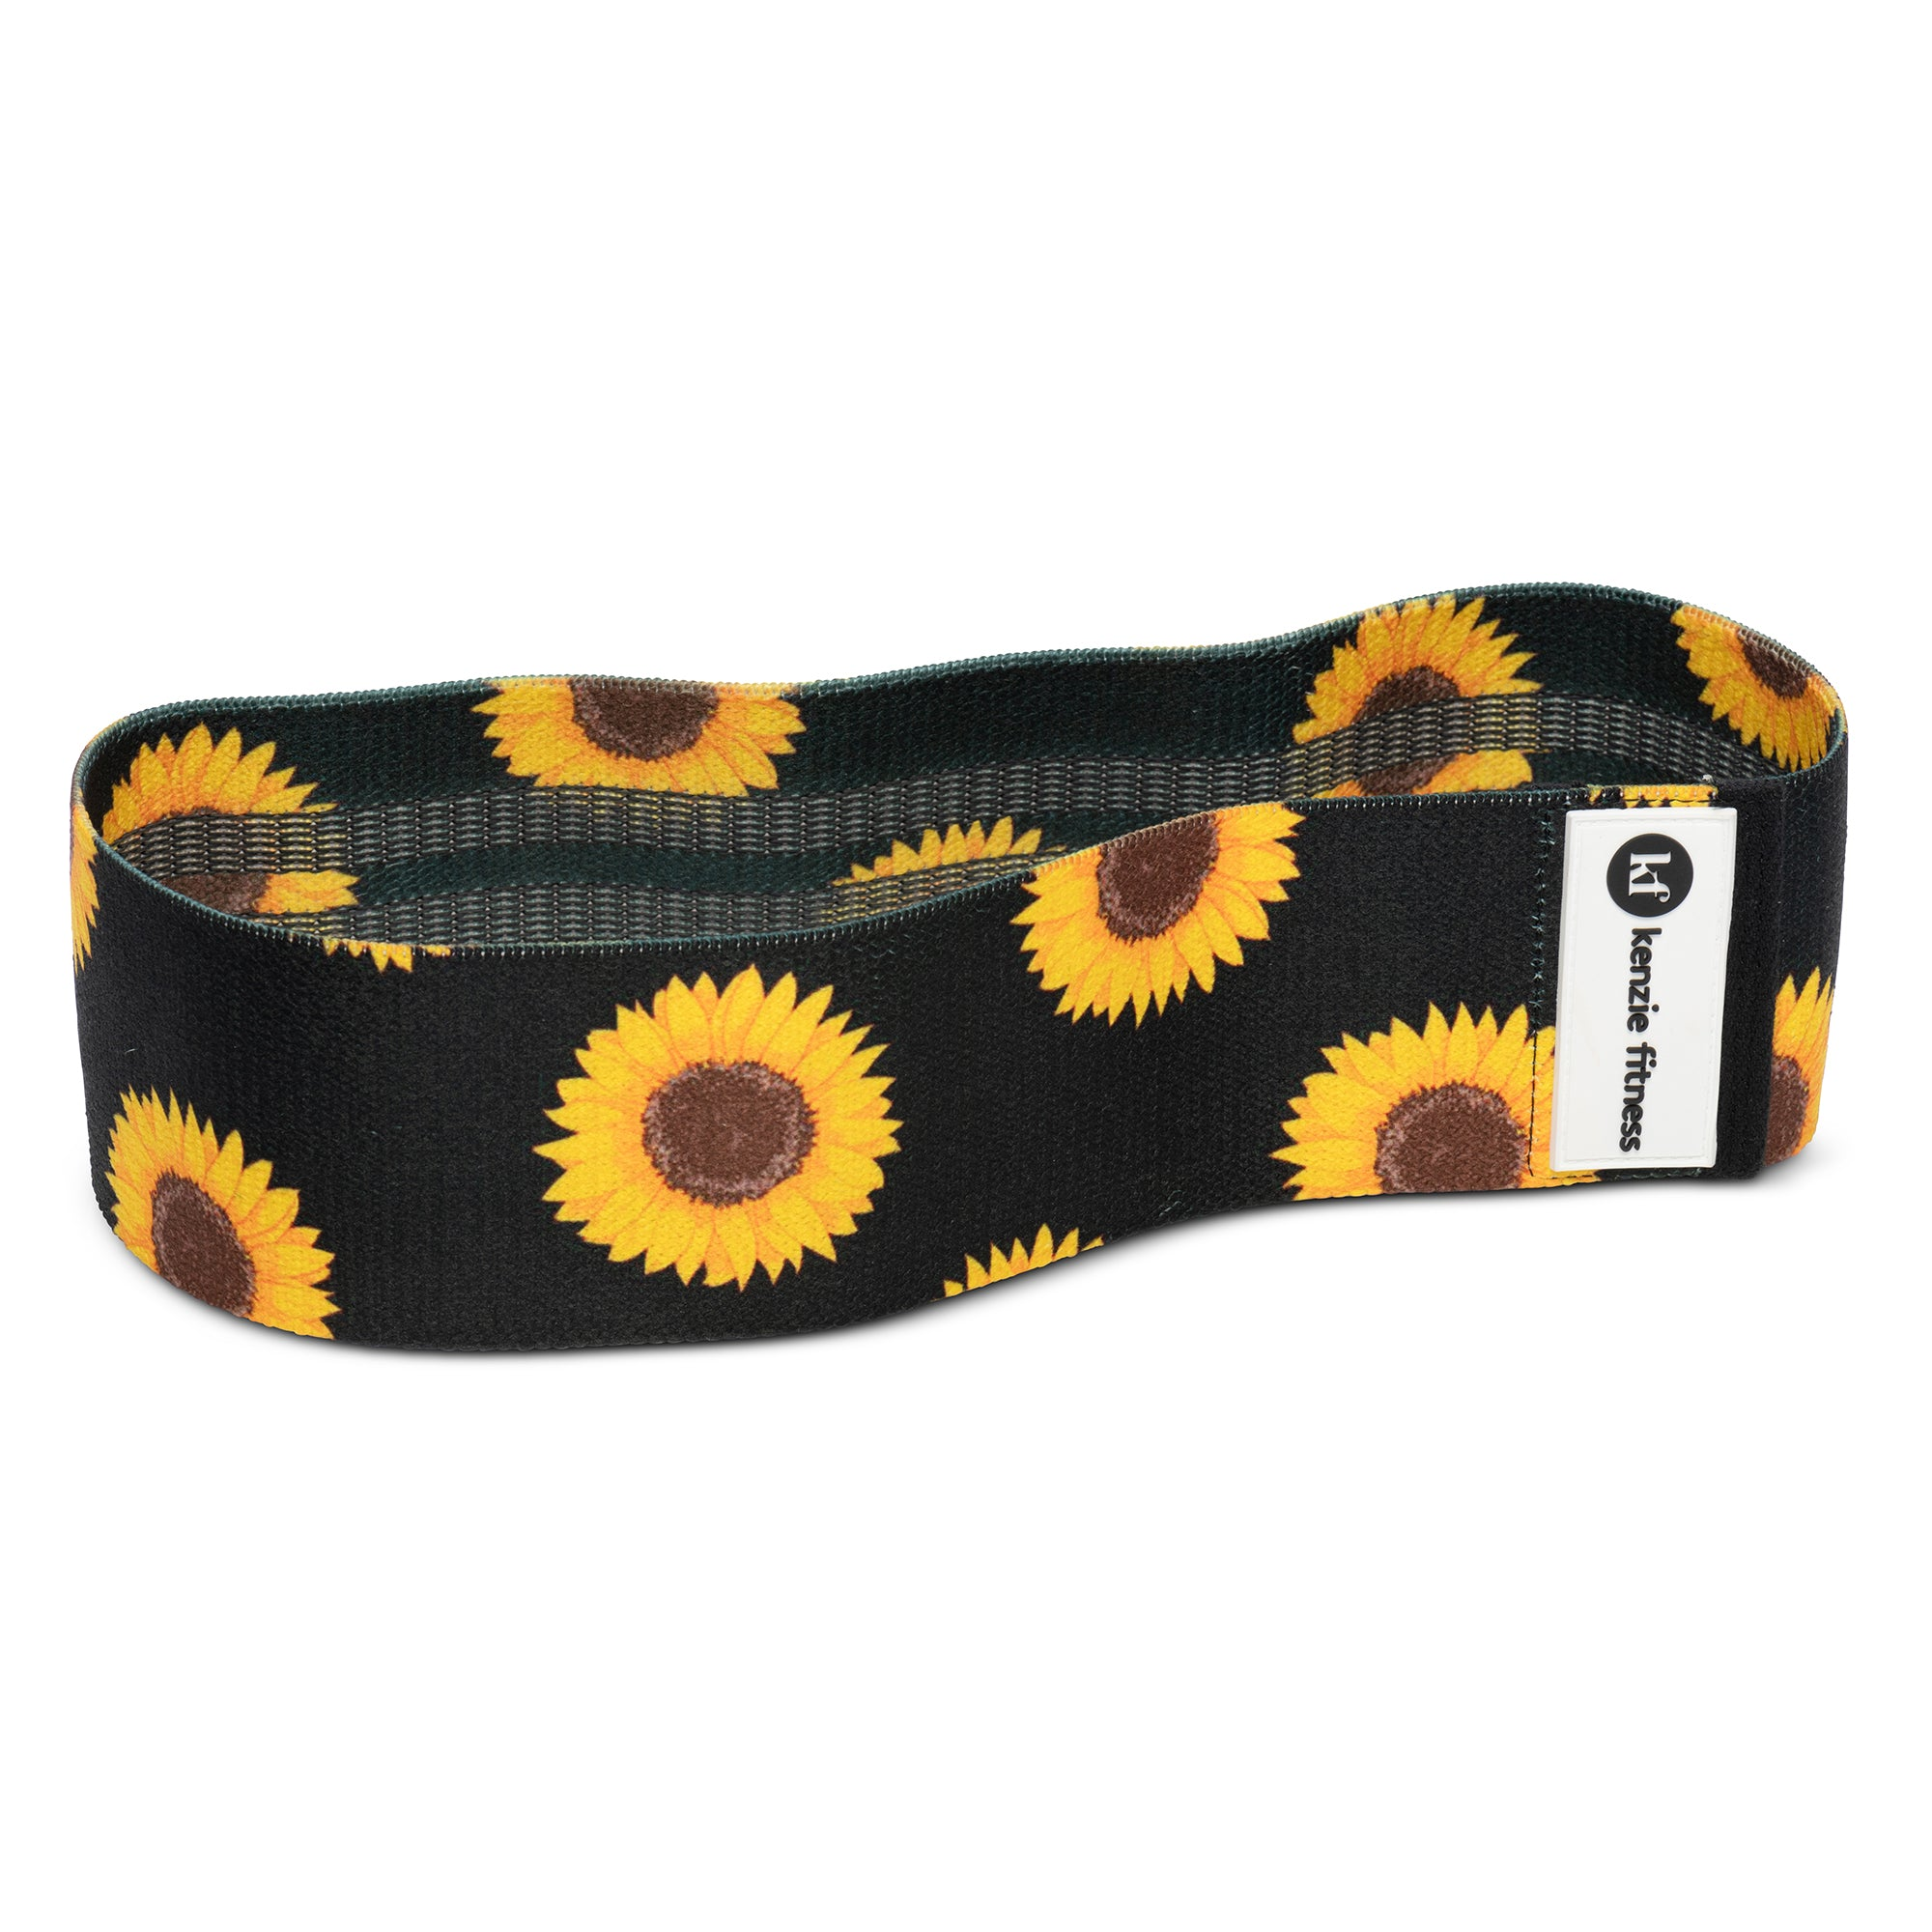 Medium Resistance Band *Sunflower